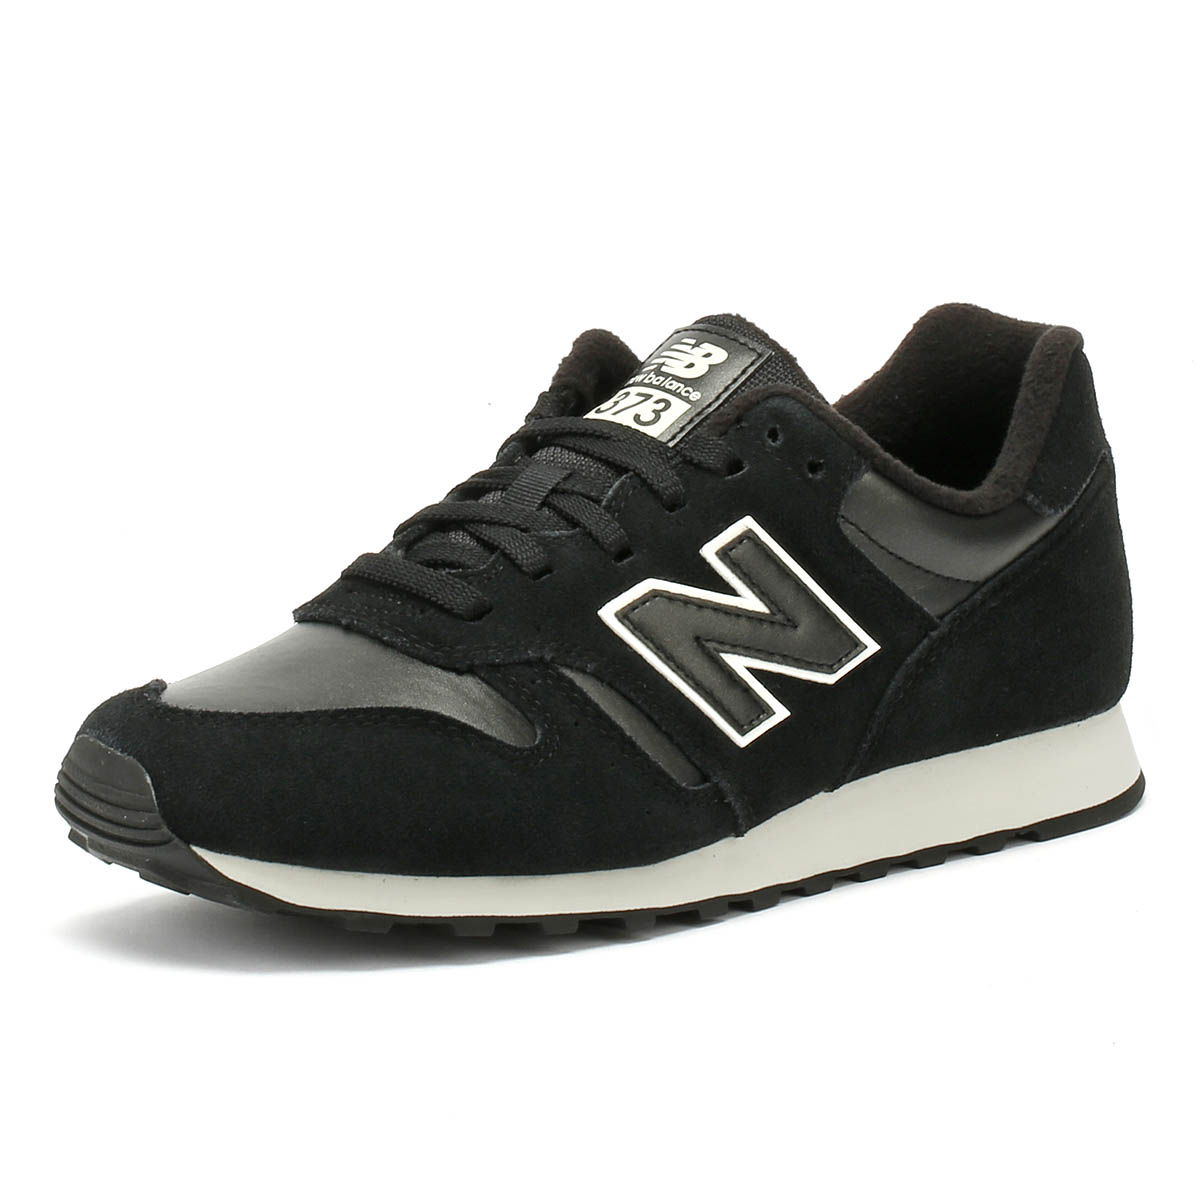 e0191e13cb967 Details about New Balance Womens Trainers 373 Black Classic Lace Up Casual  Running Shoes